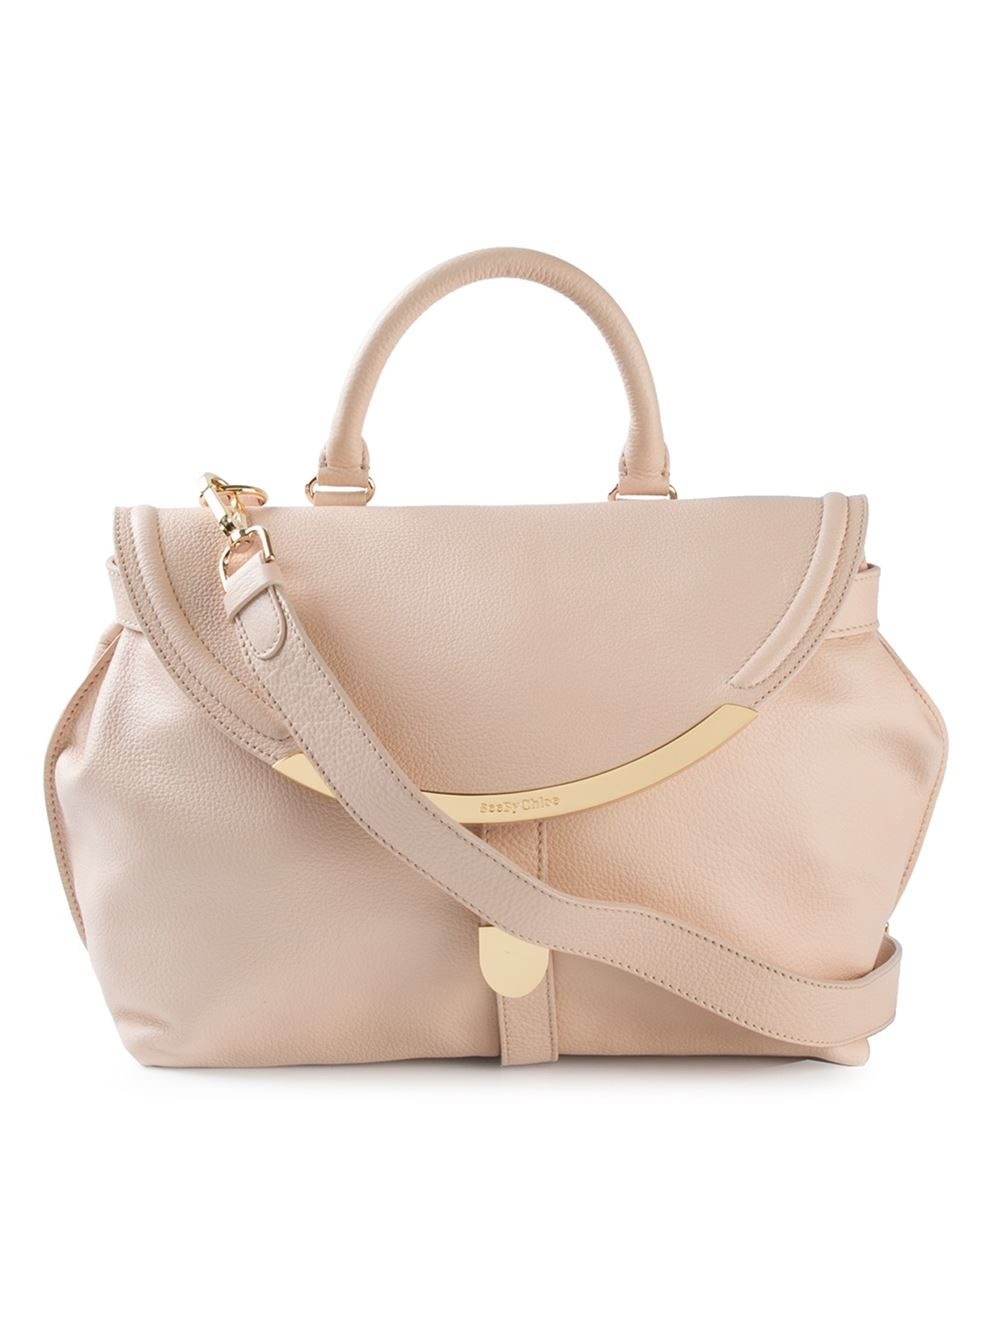 6695a4bce6 Lyst - See By Chloé  Lizzie  Crossbody Bag in Natural